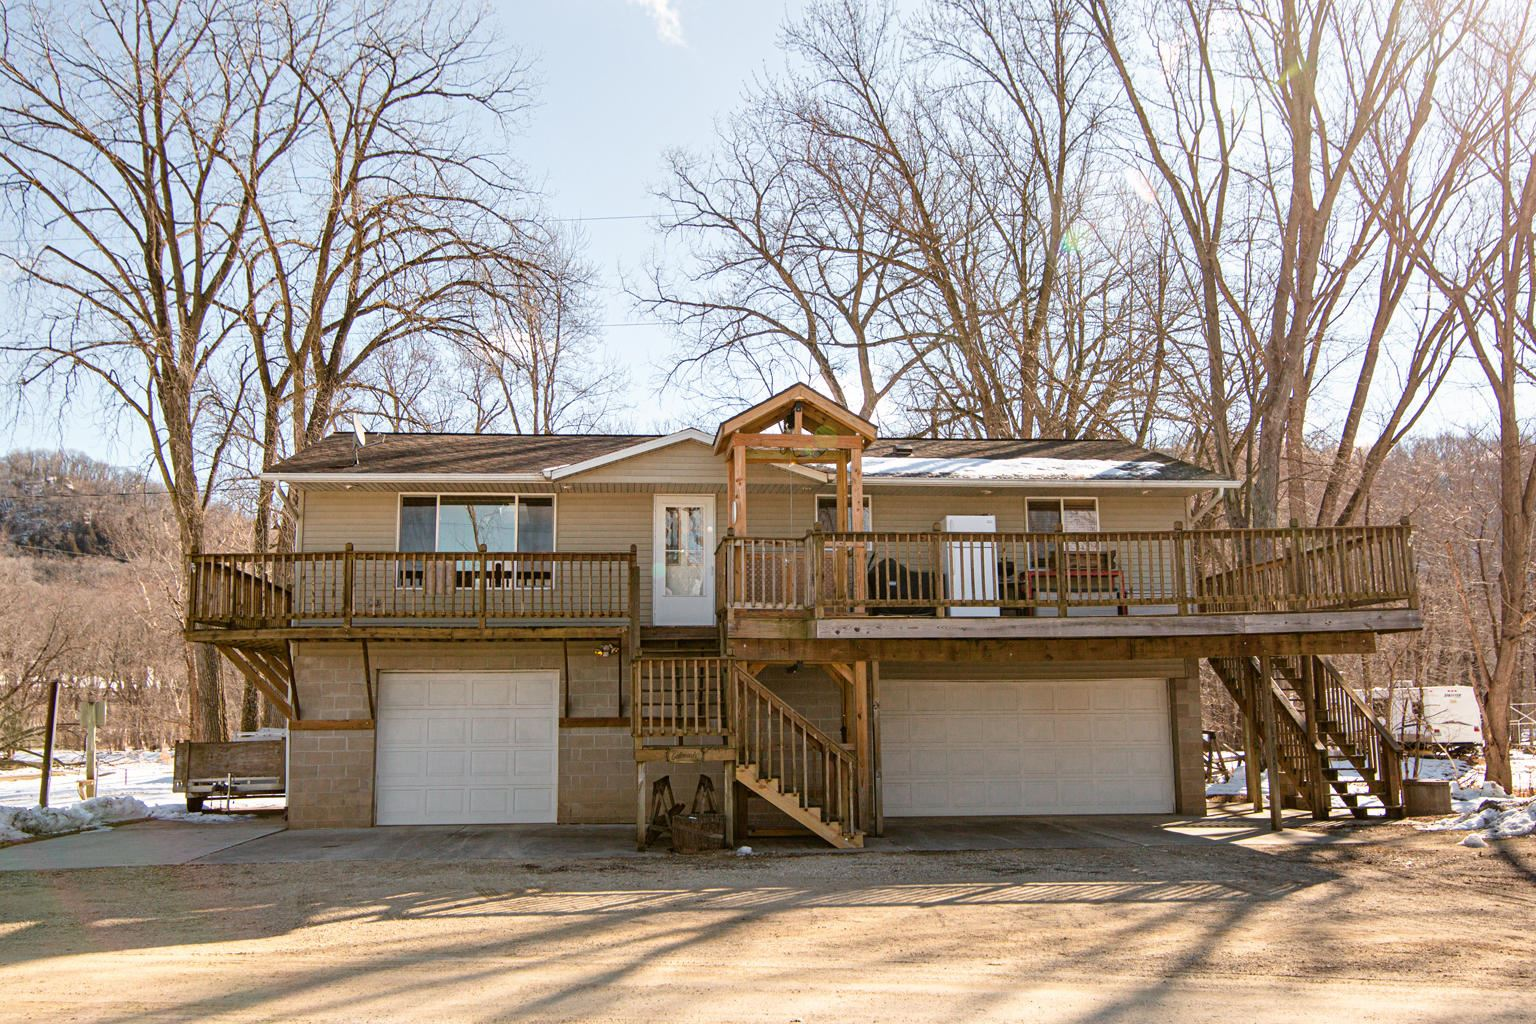 S7307 Anthony Rd, Wheatland, WI 54624 - MLS#: 1728778